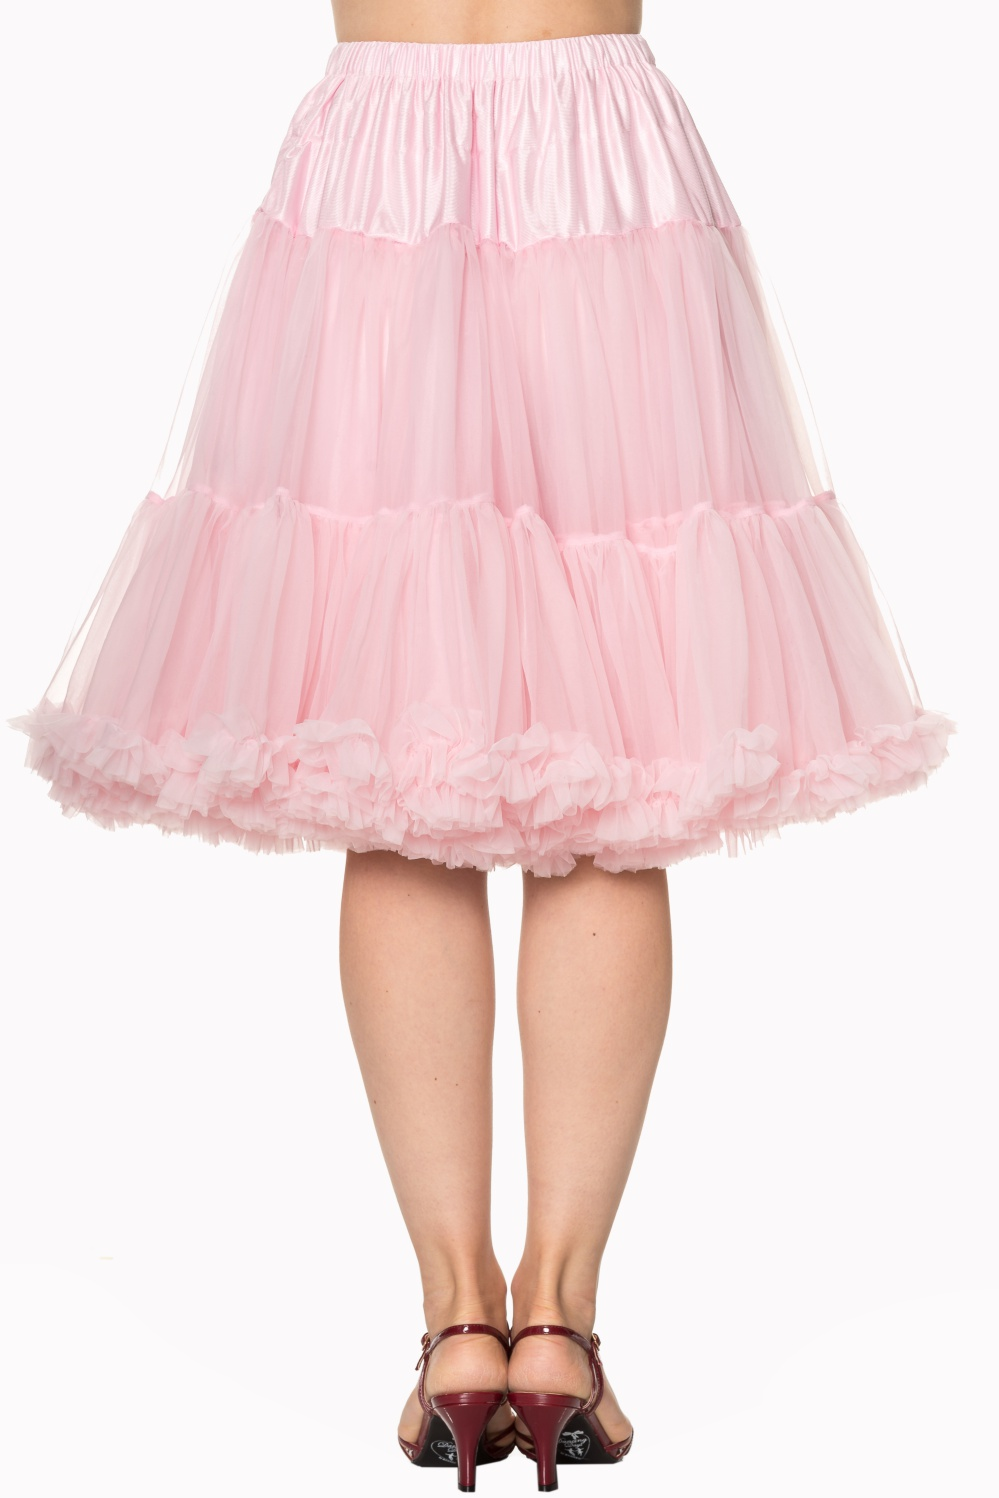 Banned Retro 50s Starlite Light Pink Petticoat